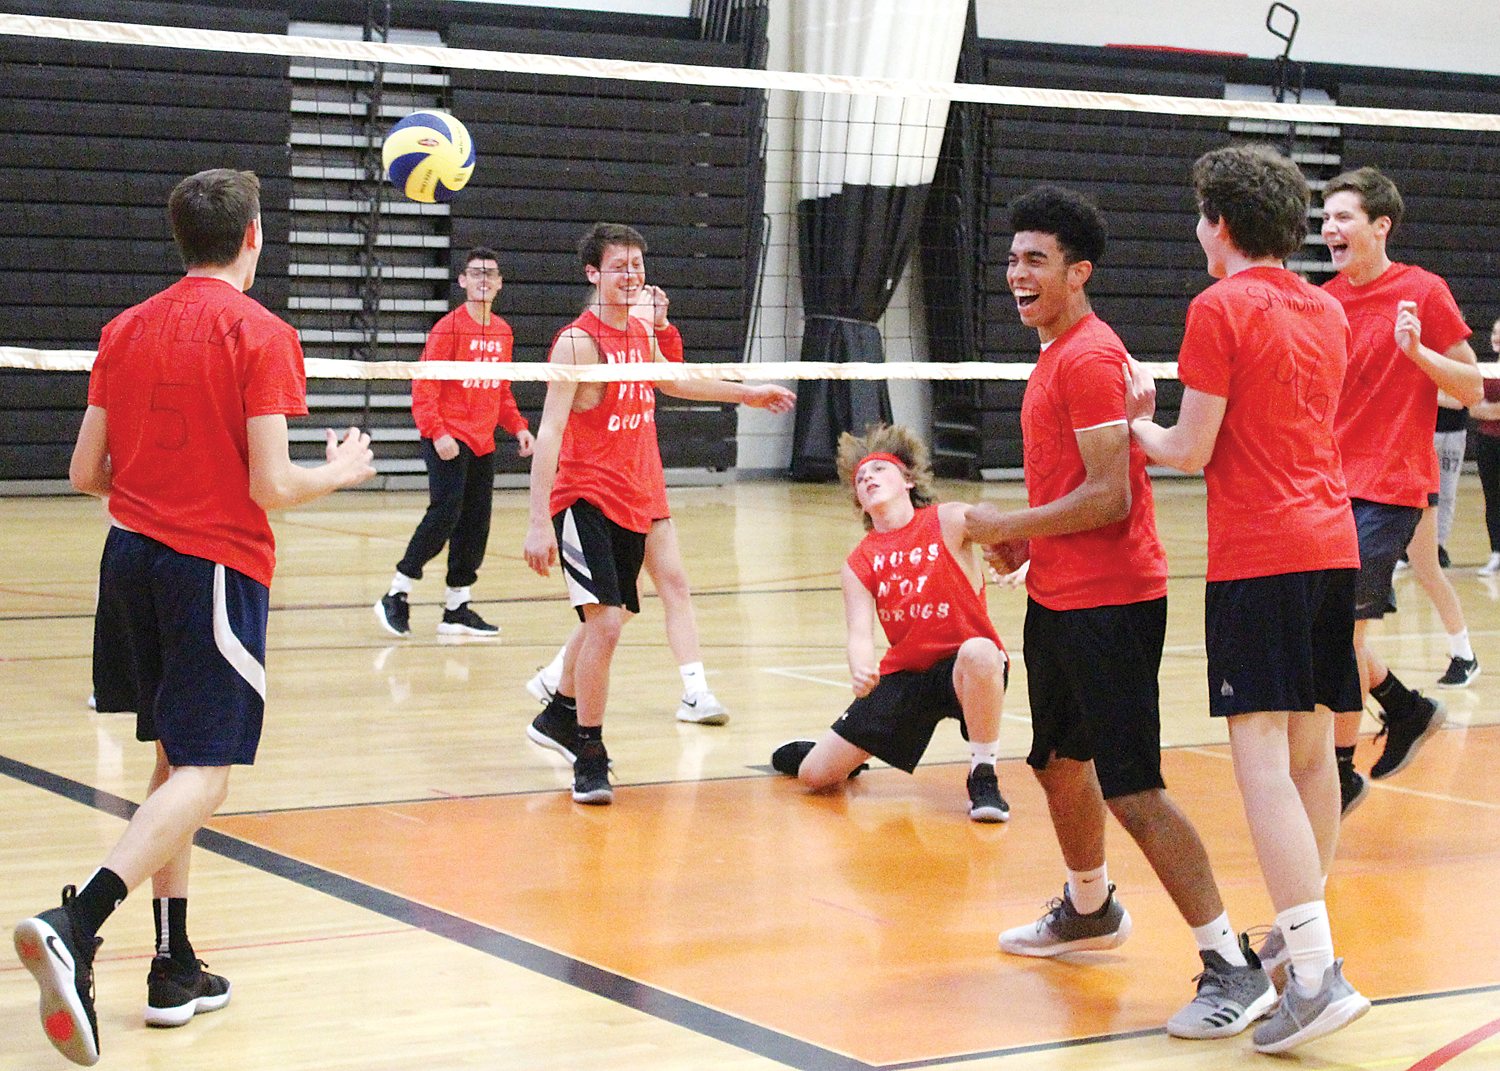 C-C SHS teams displayed impressive moves on the volleyball courts. Provided photo